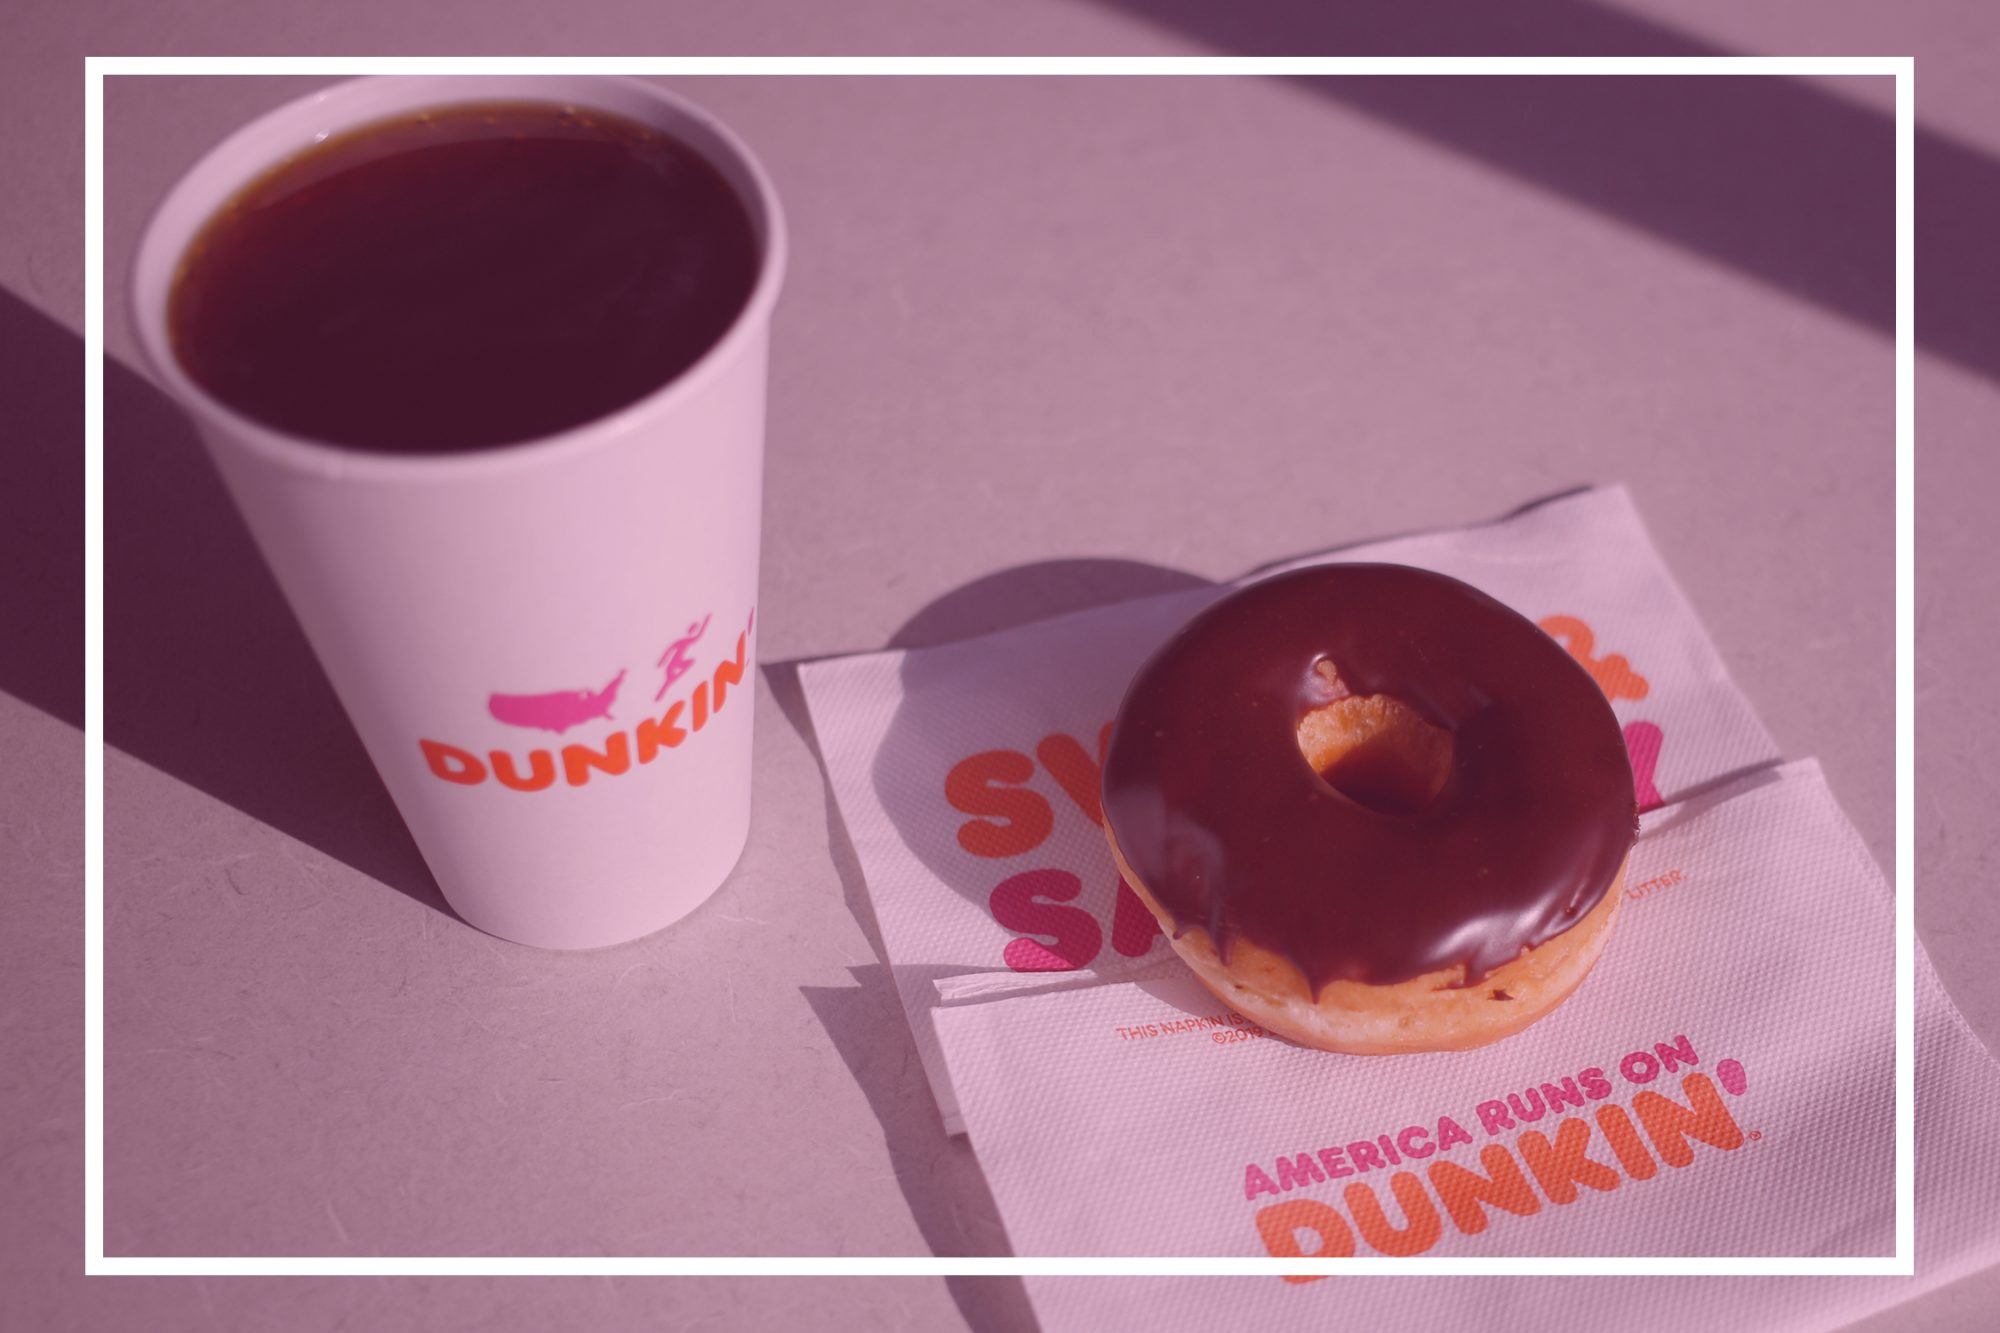 A black coffee and chocolate frosted donut are arranged for a photograph